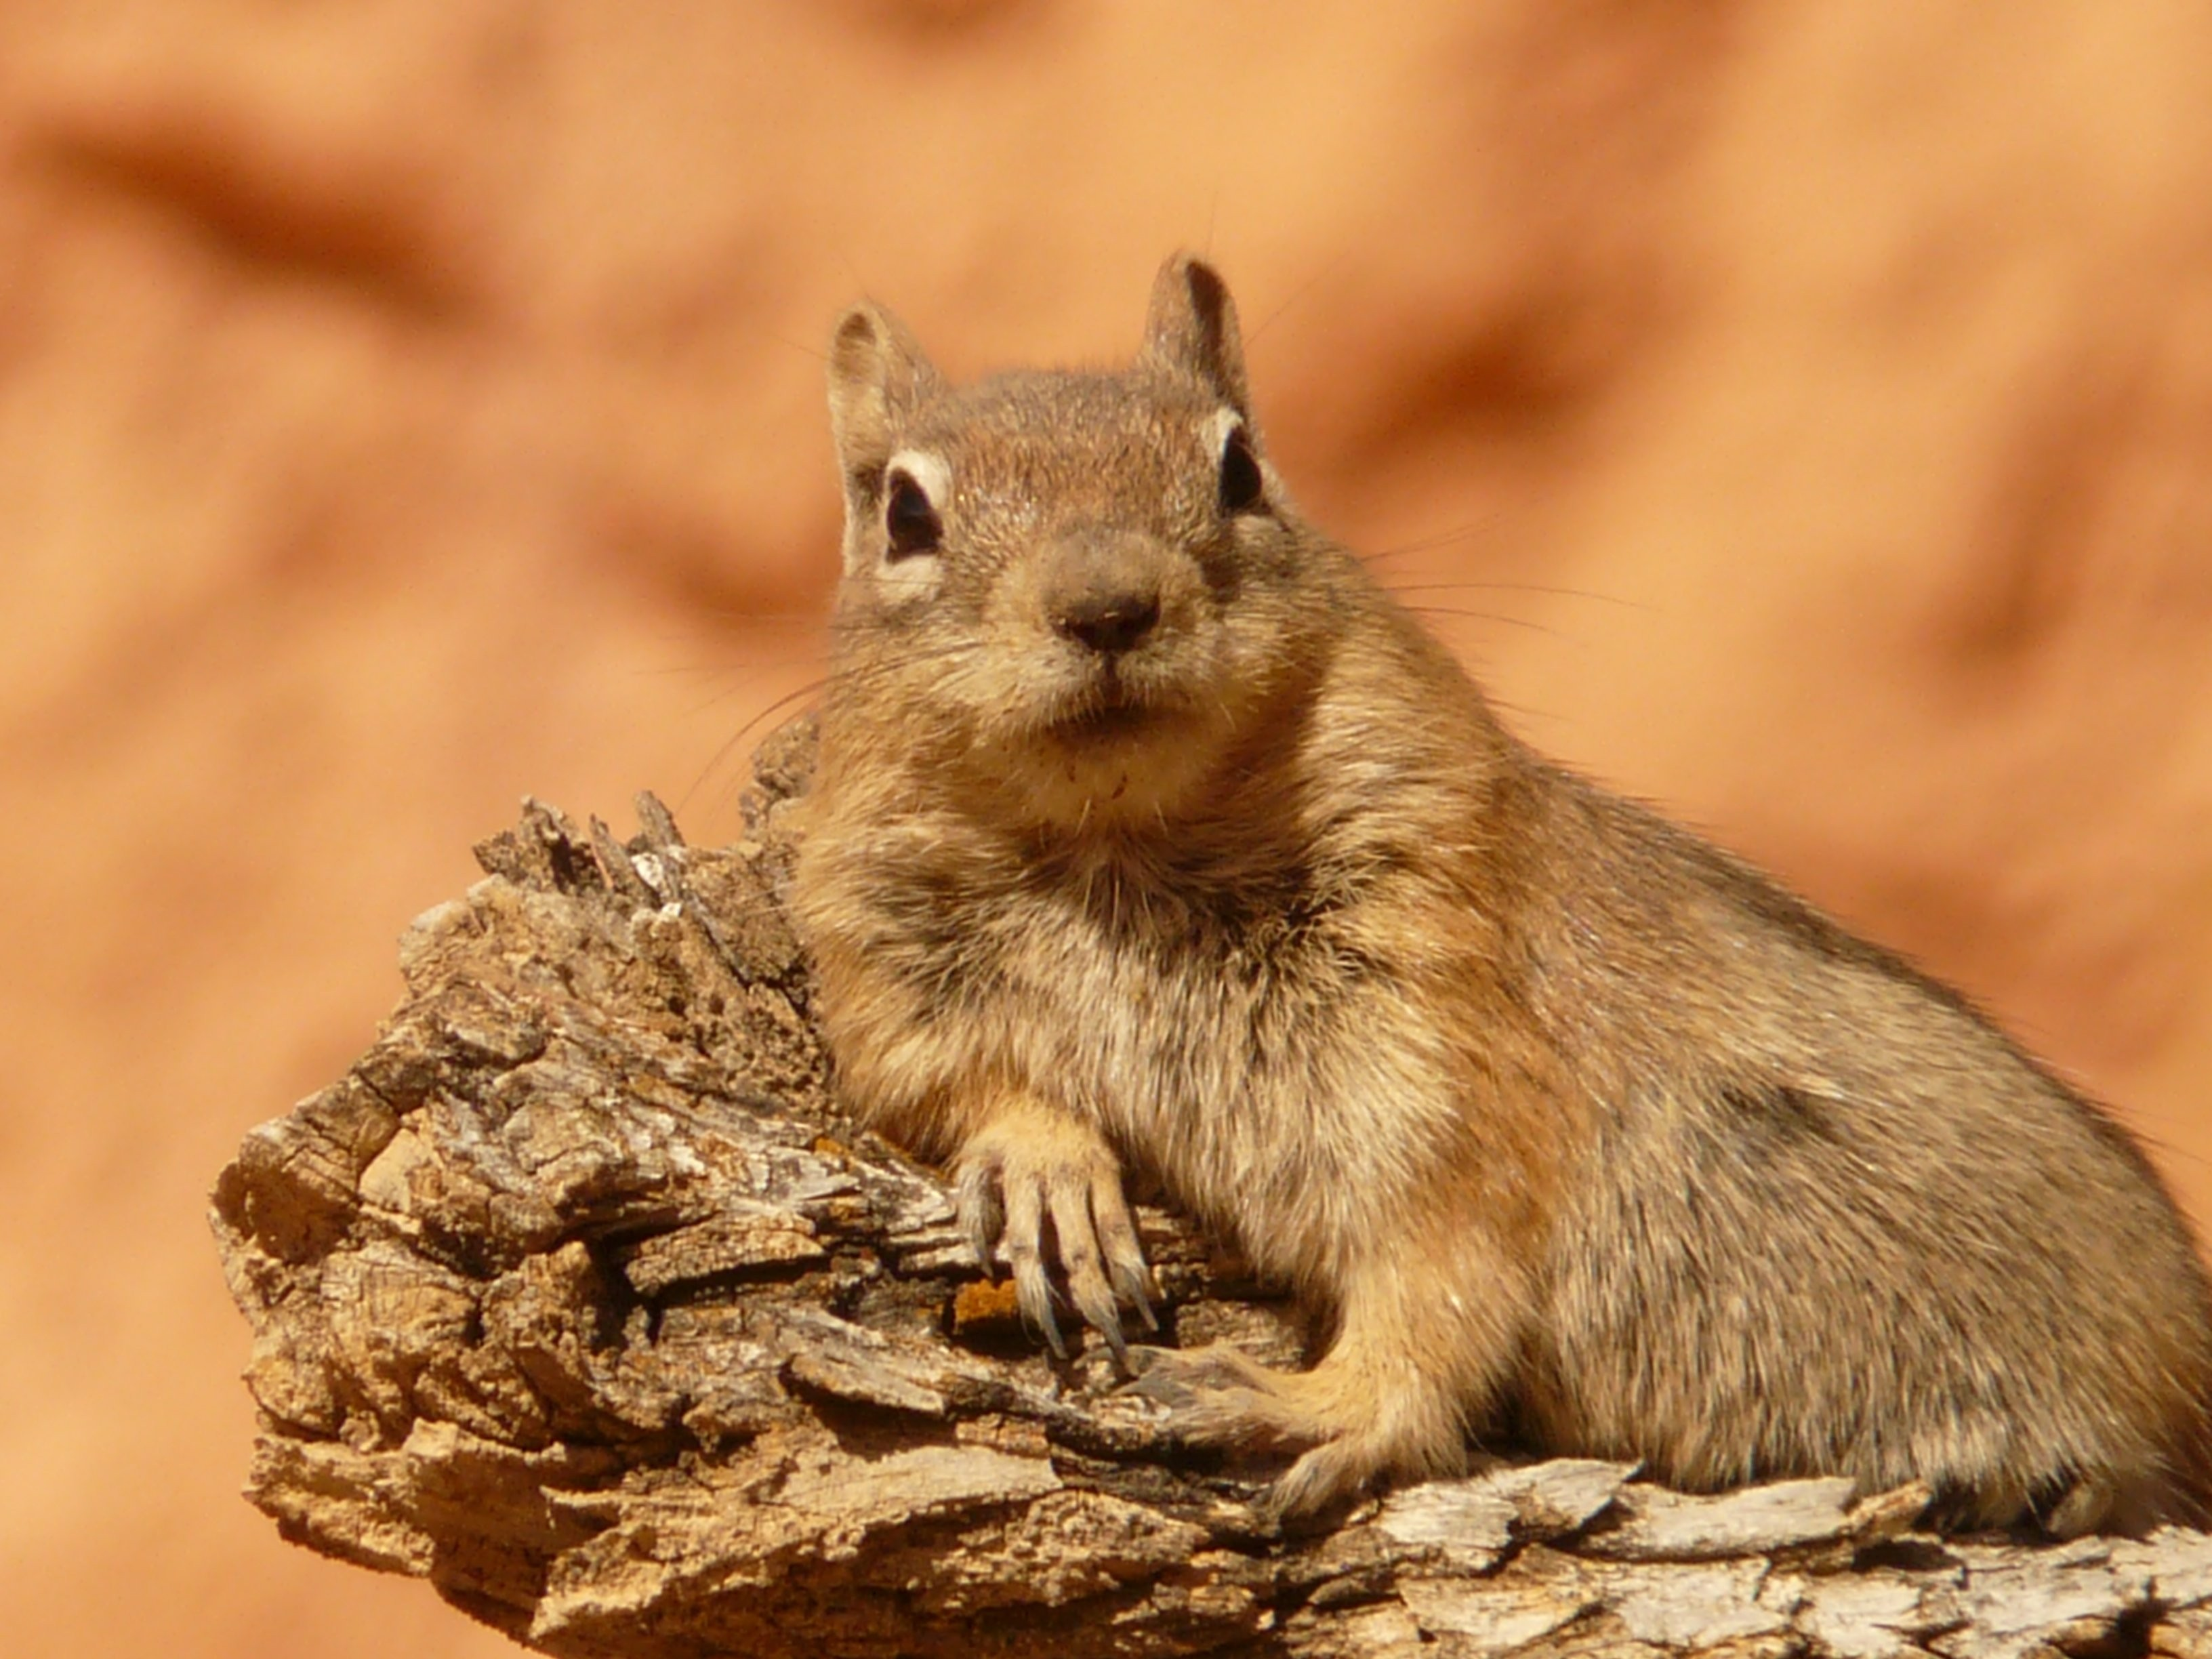 138376 download wallpaper Animals, Lies, Animal, Chipmunk screensavers and pictures for free